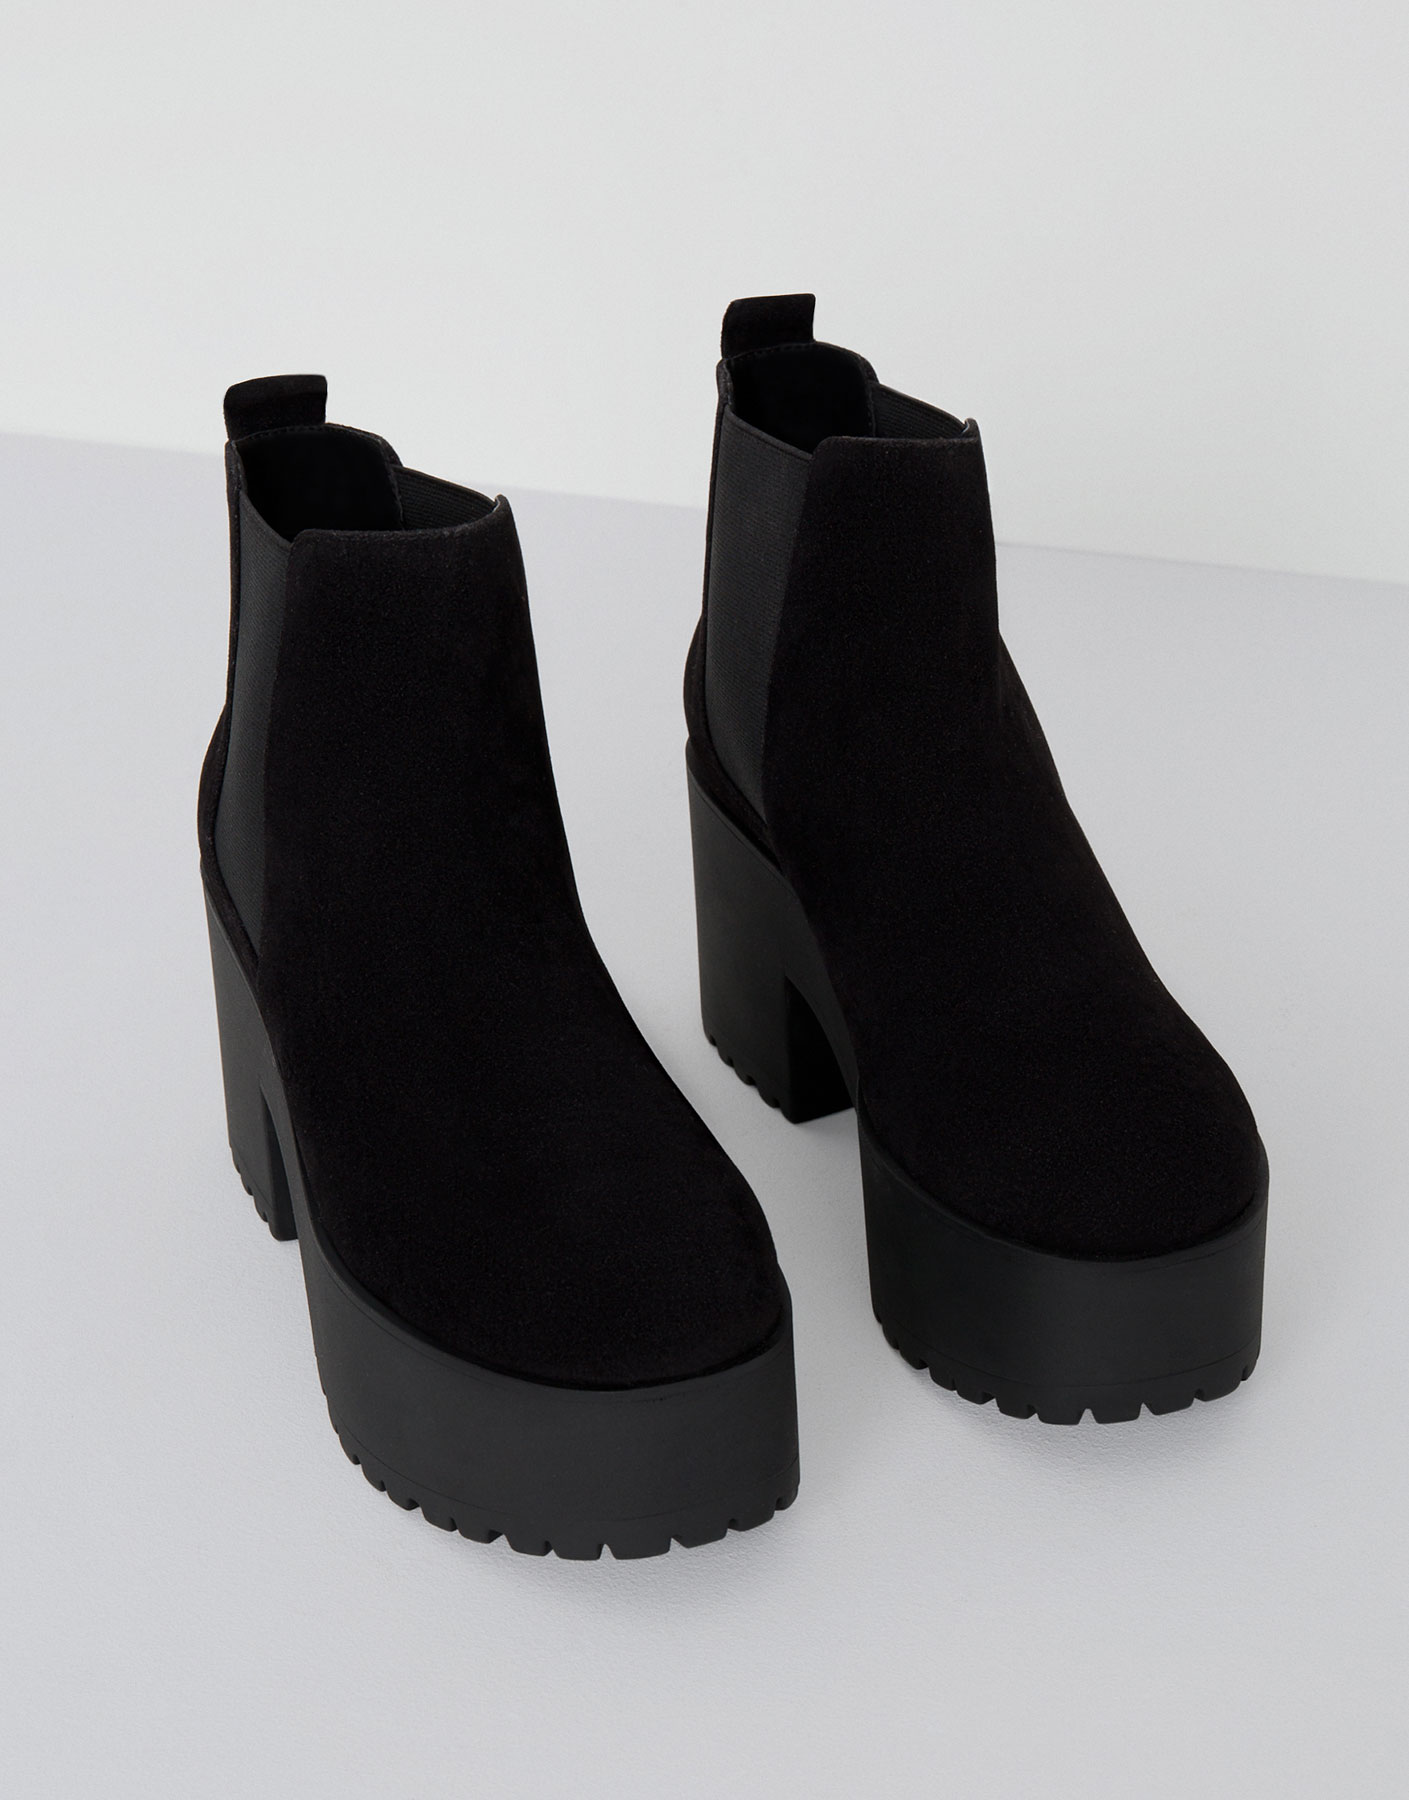 Black ankle boots with block high heels